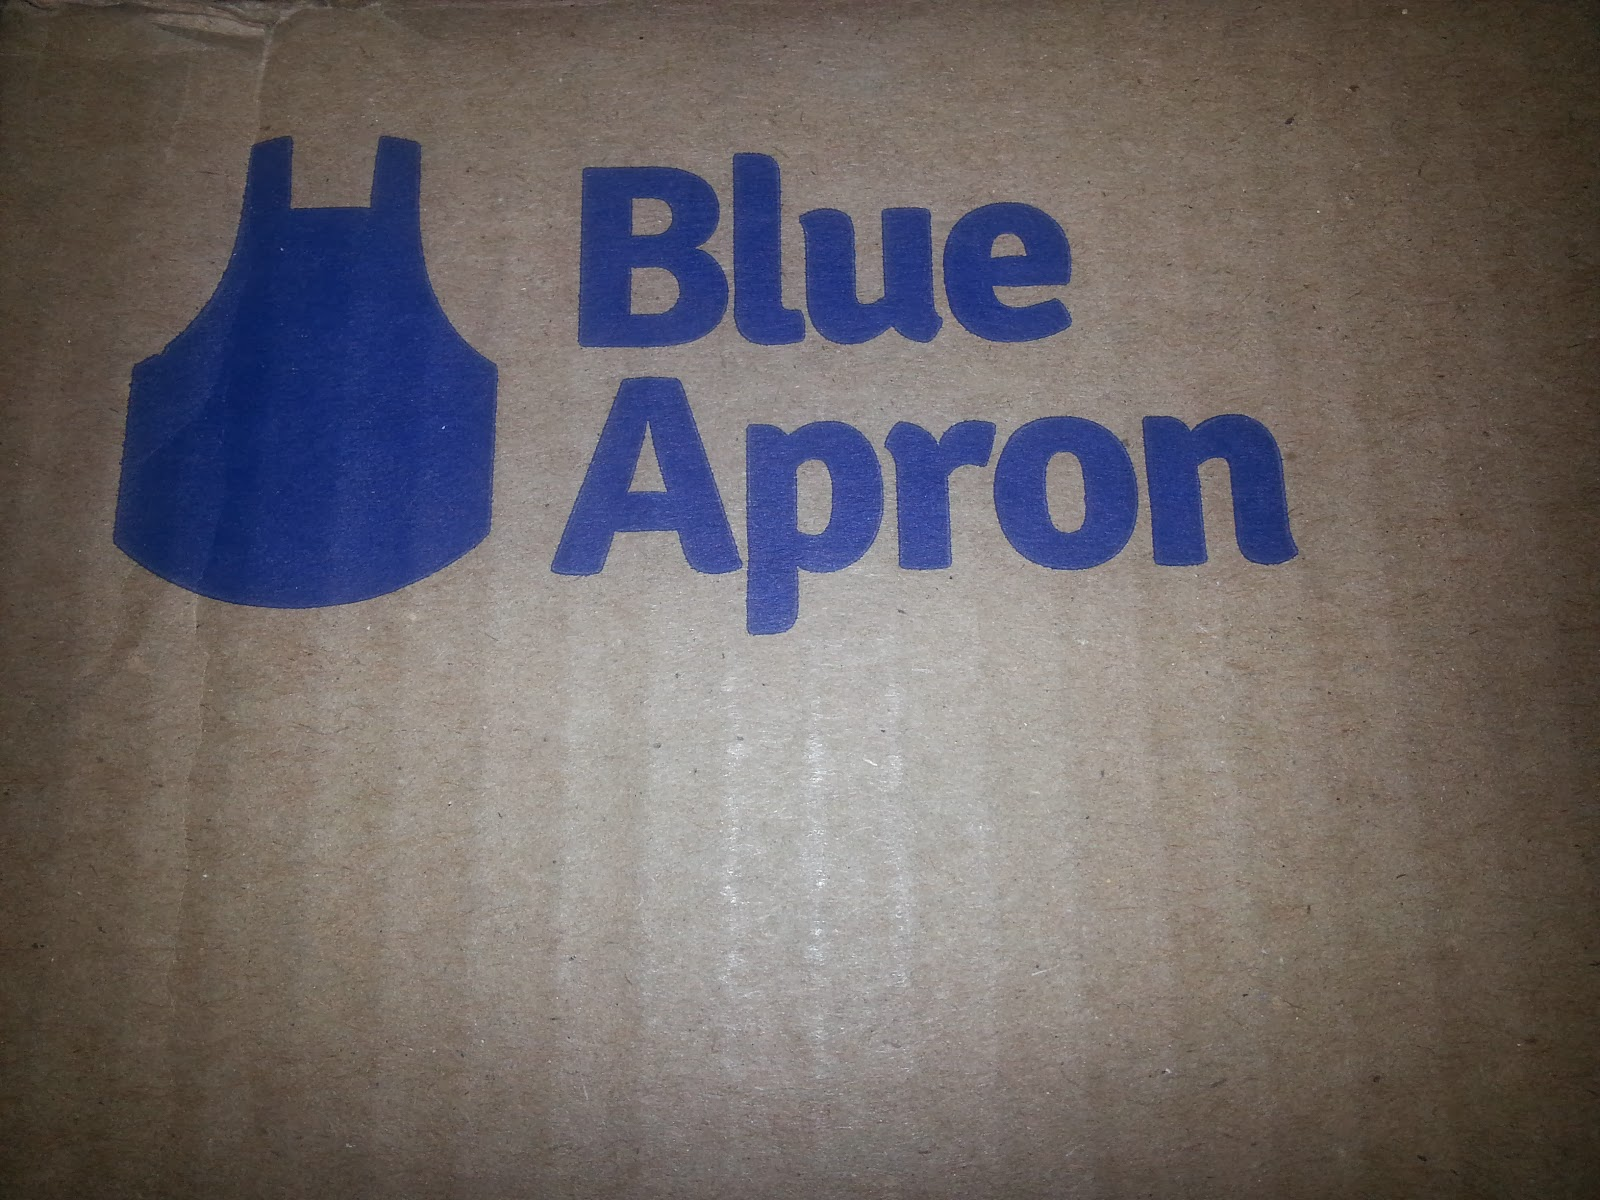 Blue apron logo